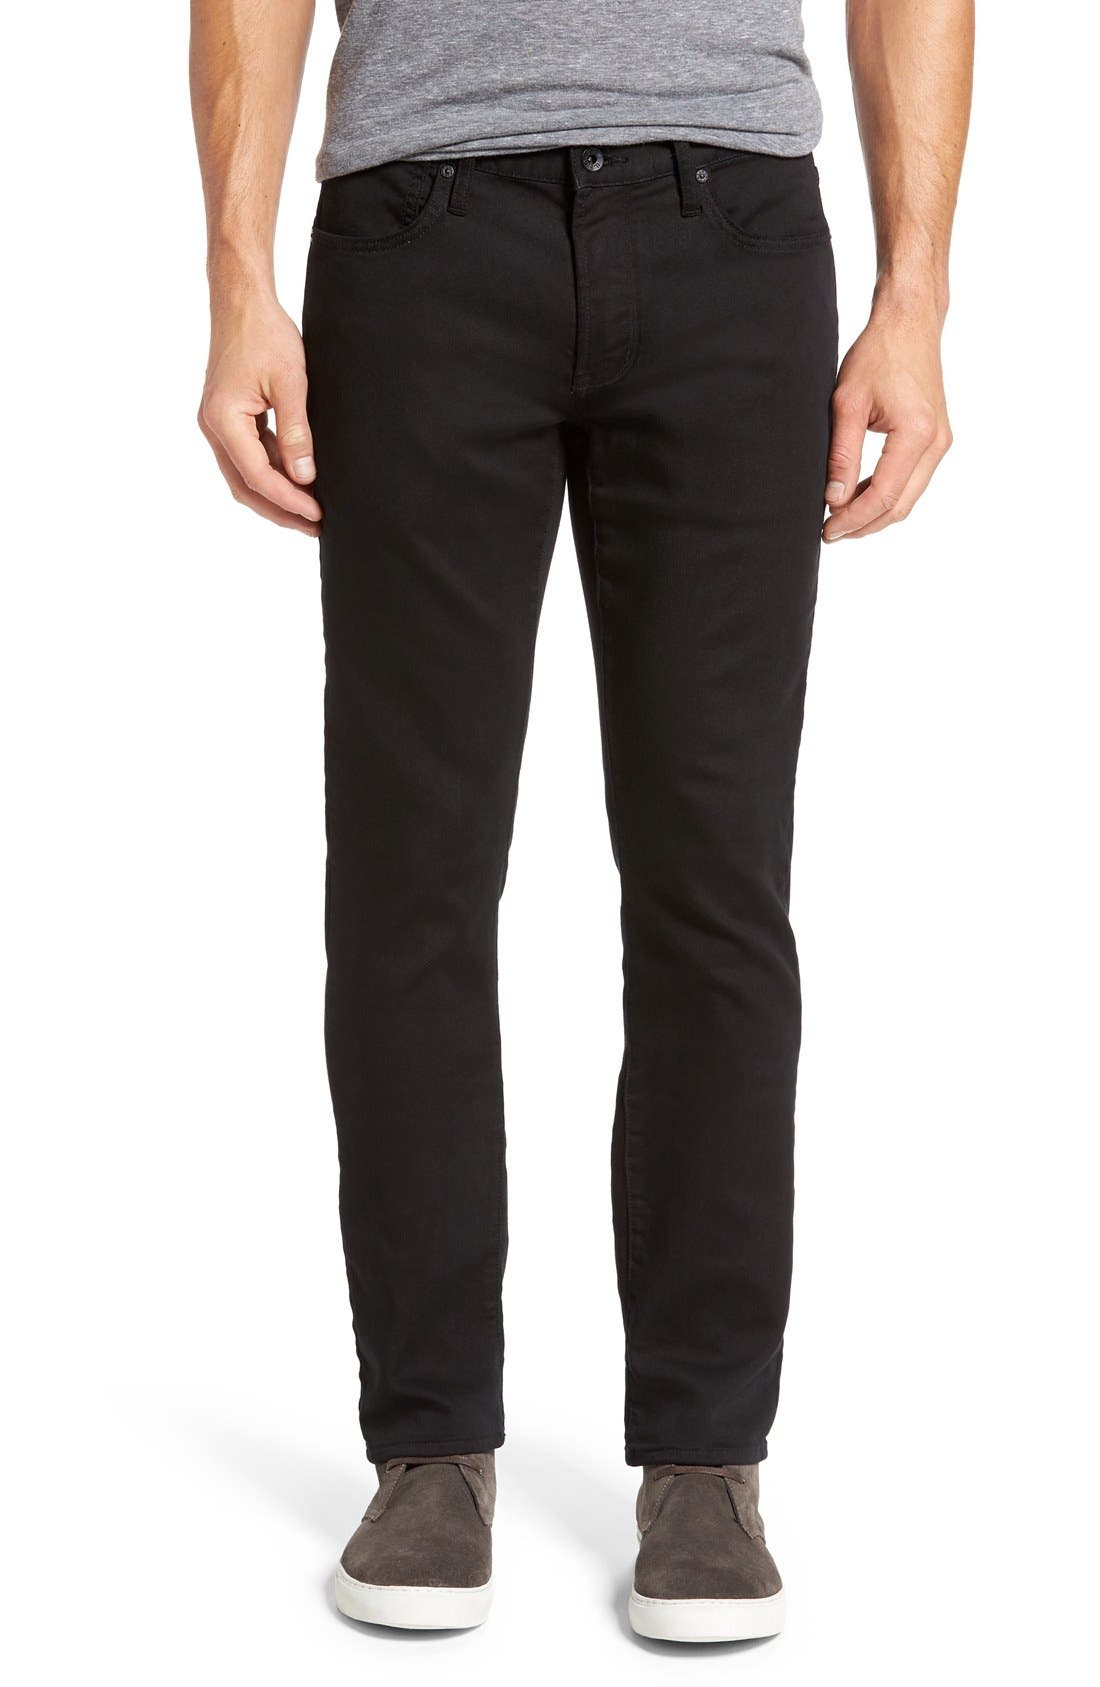 'Bowery' Slim Straight Leg Jeans,                         Main,                         color, 001